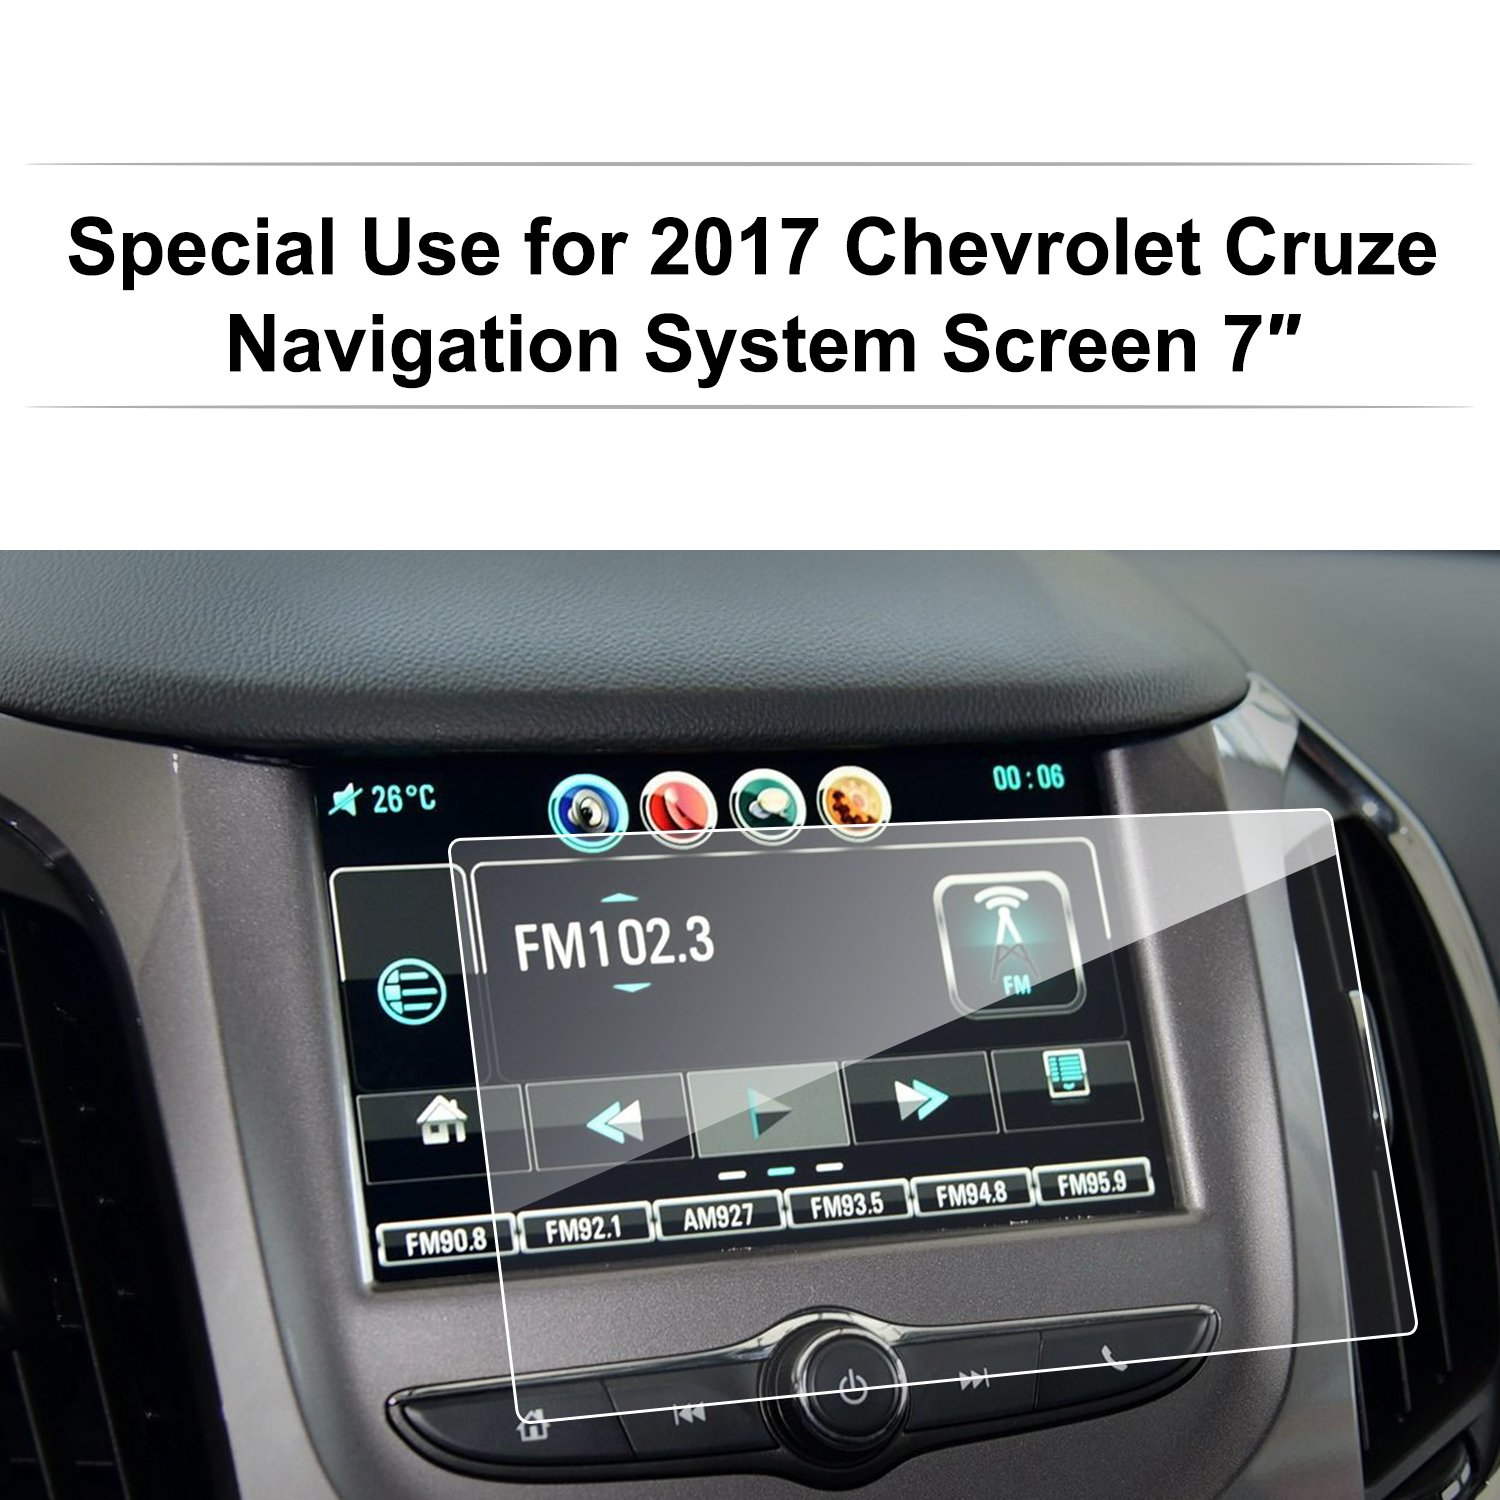 reviews front rating diesel motion msrp in cars end cruze and chevrolet motor turbo trend